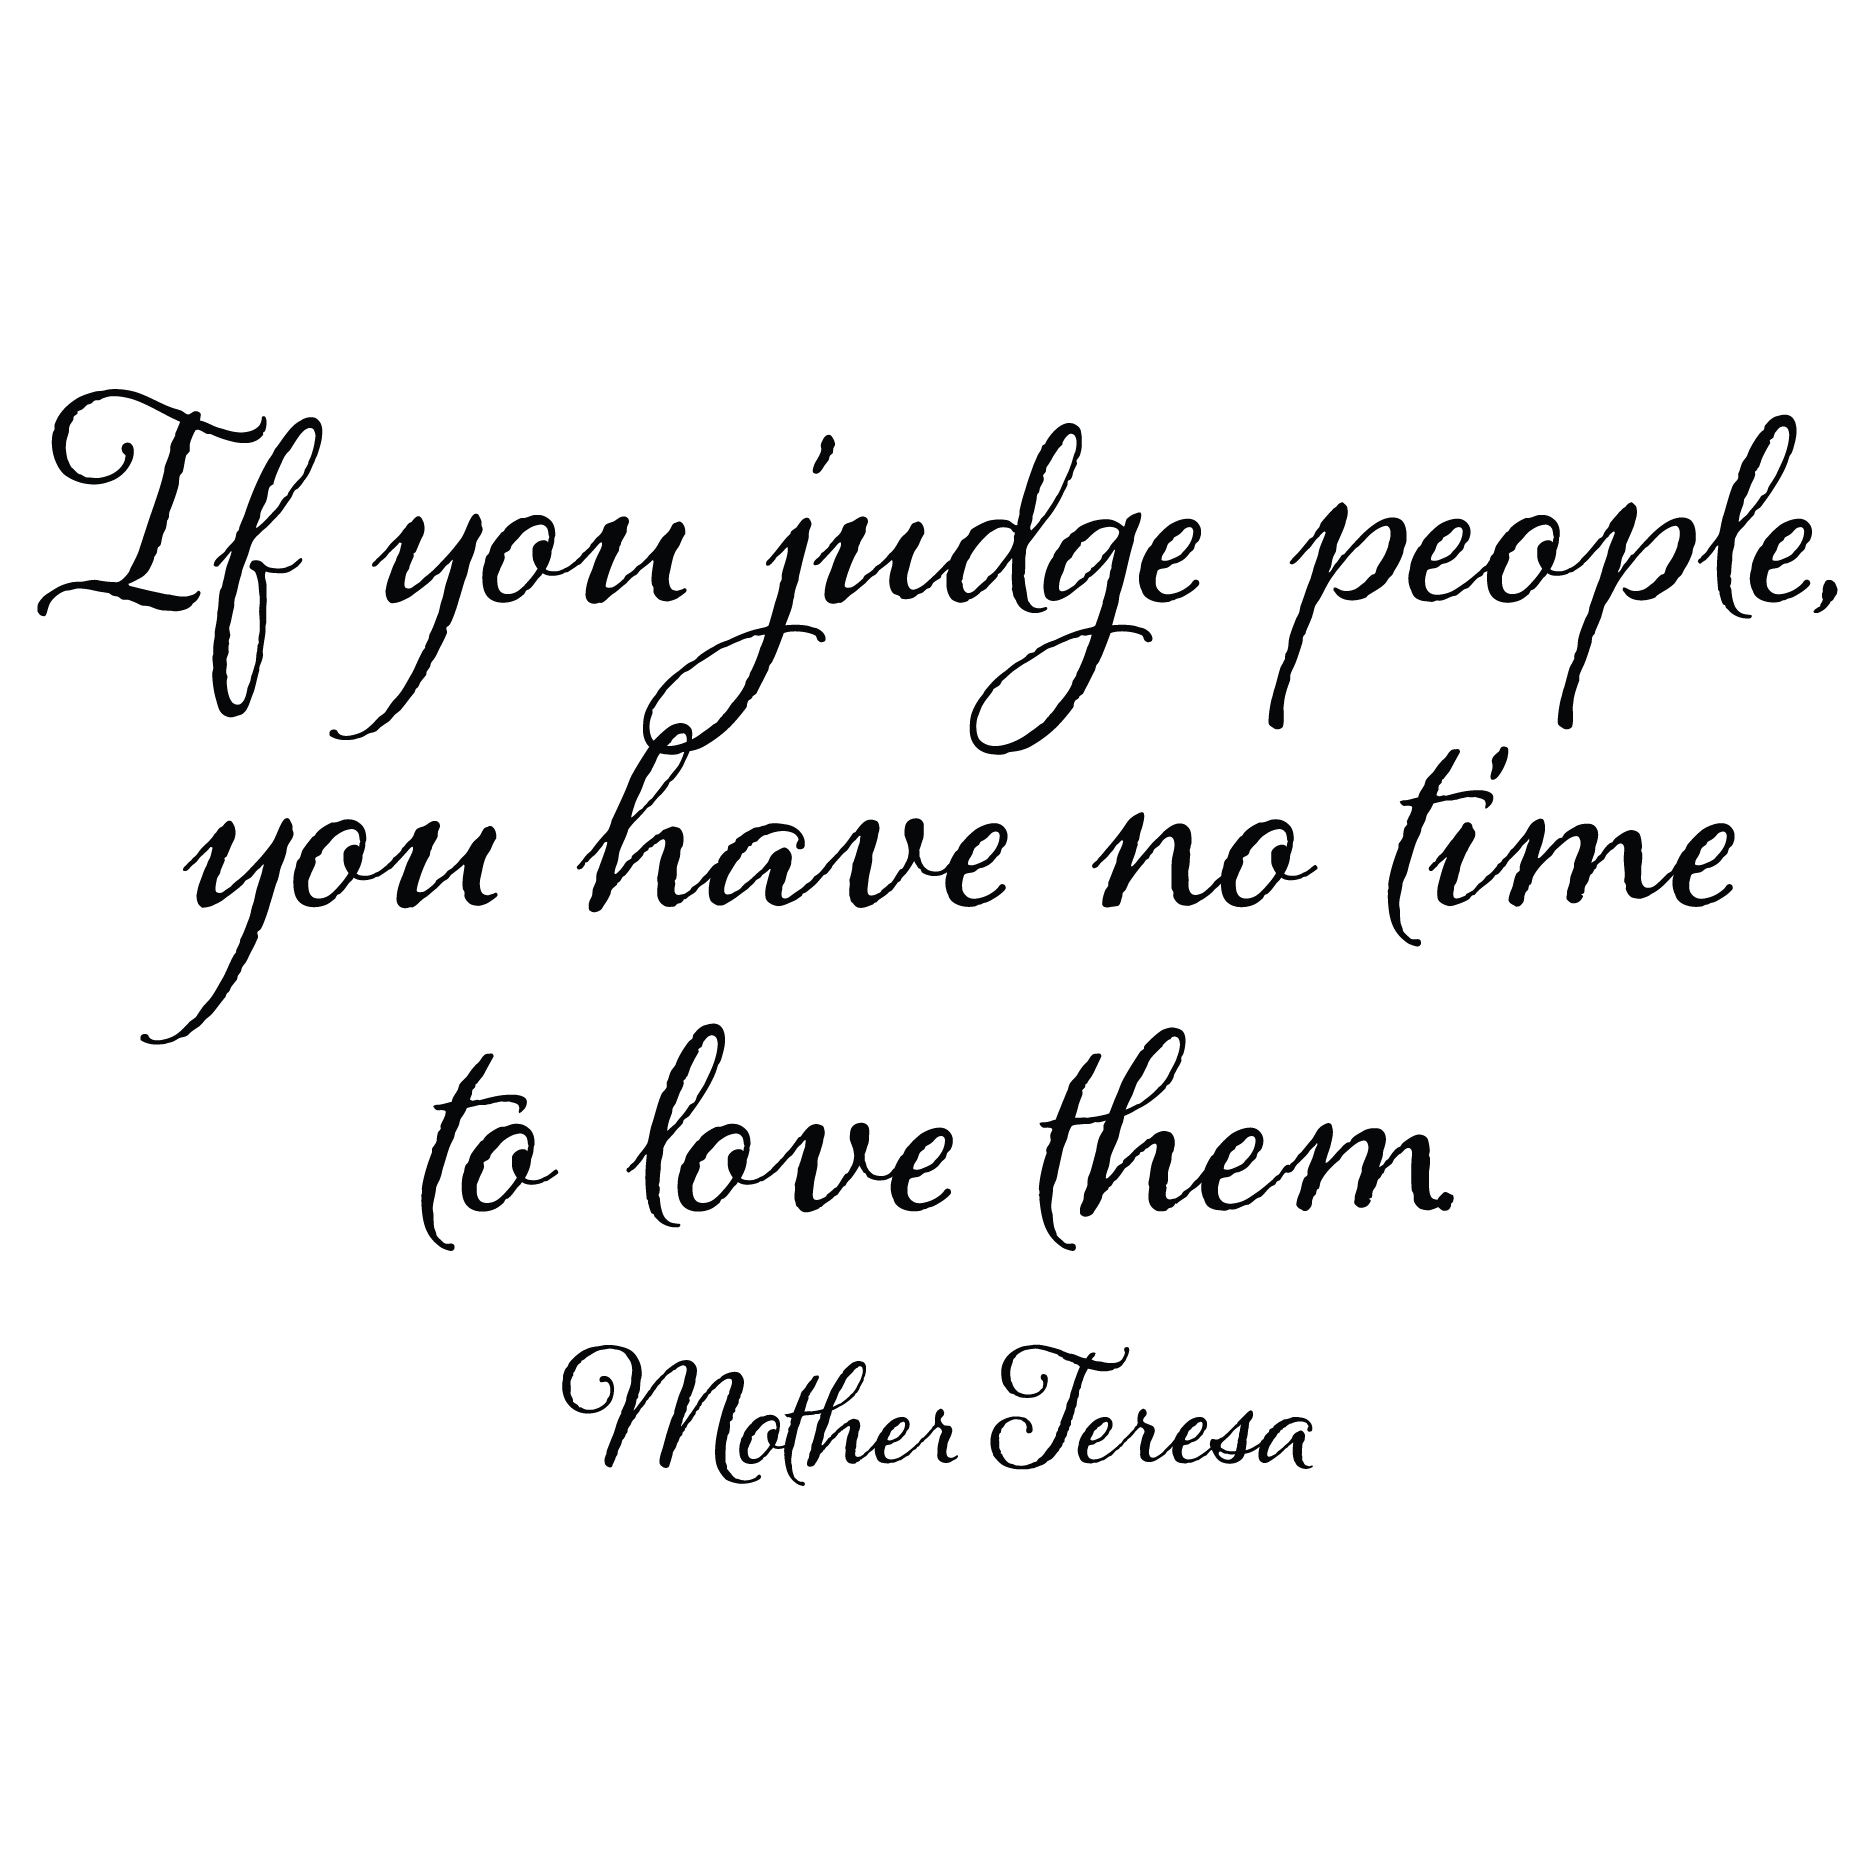 If You Judge People Wall Quotes Decal Wallquotescom